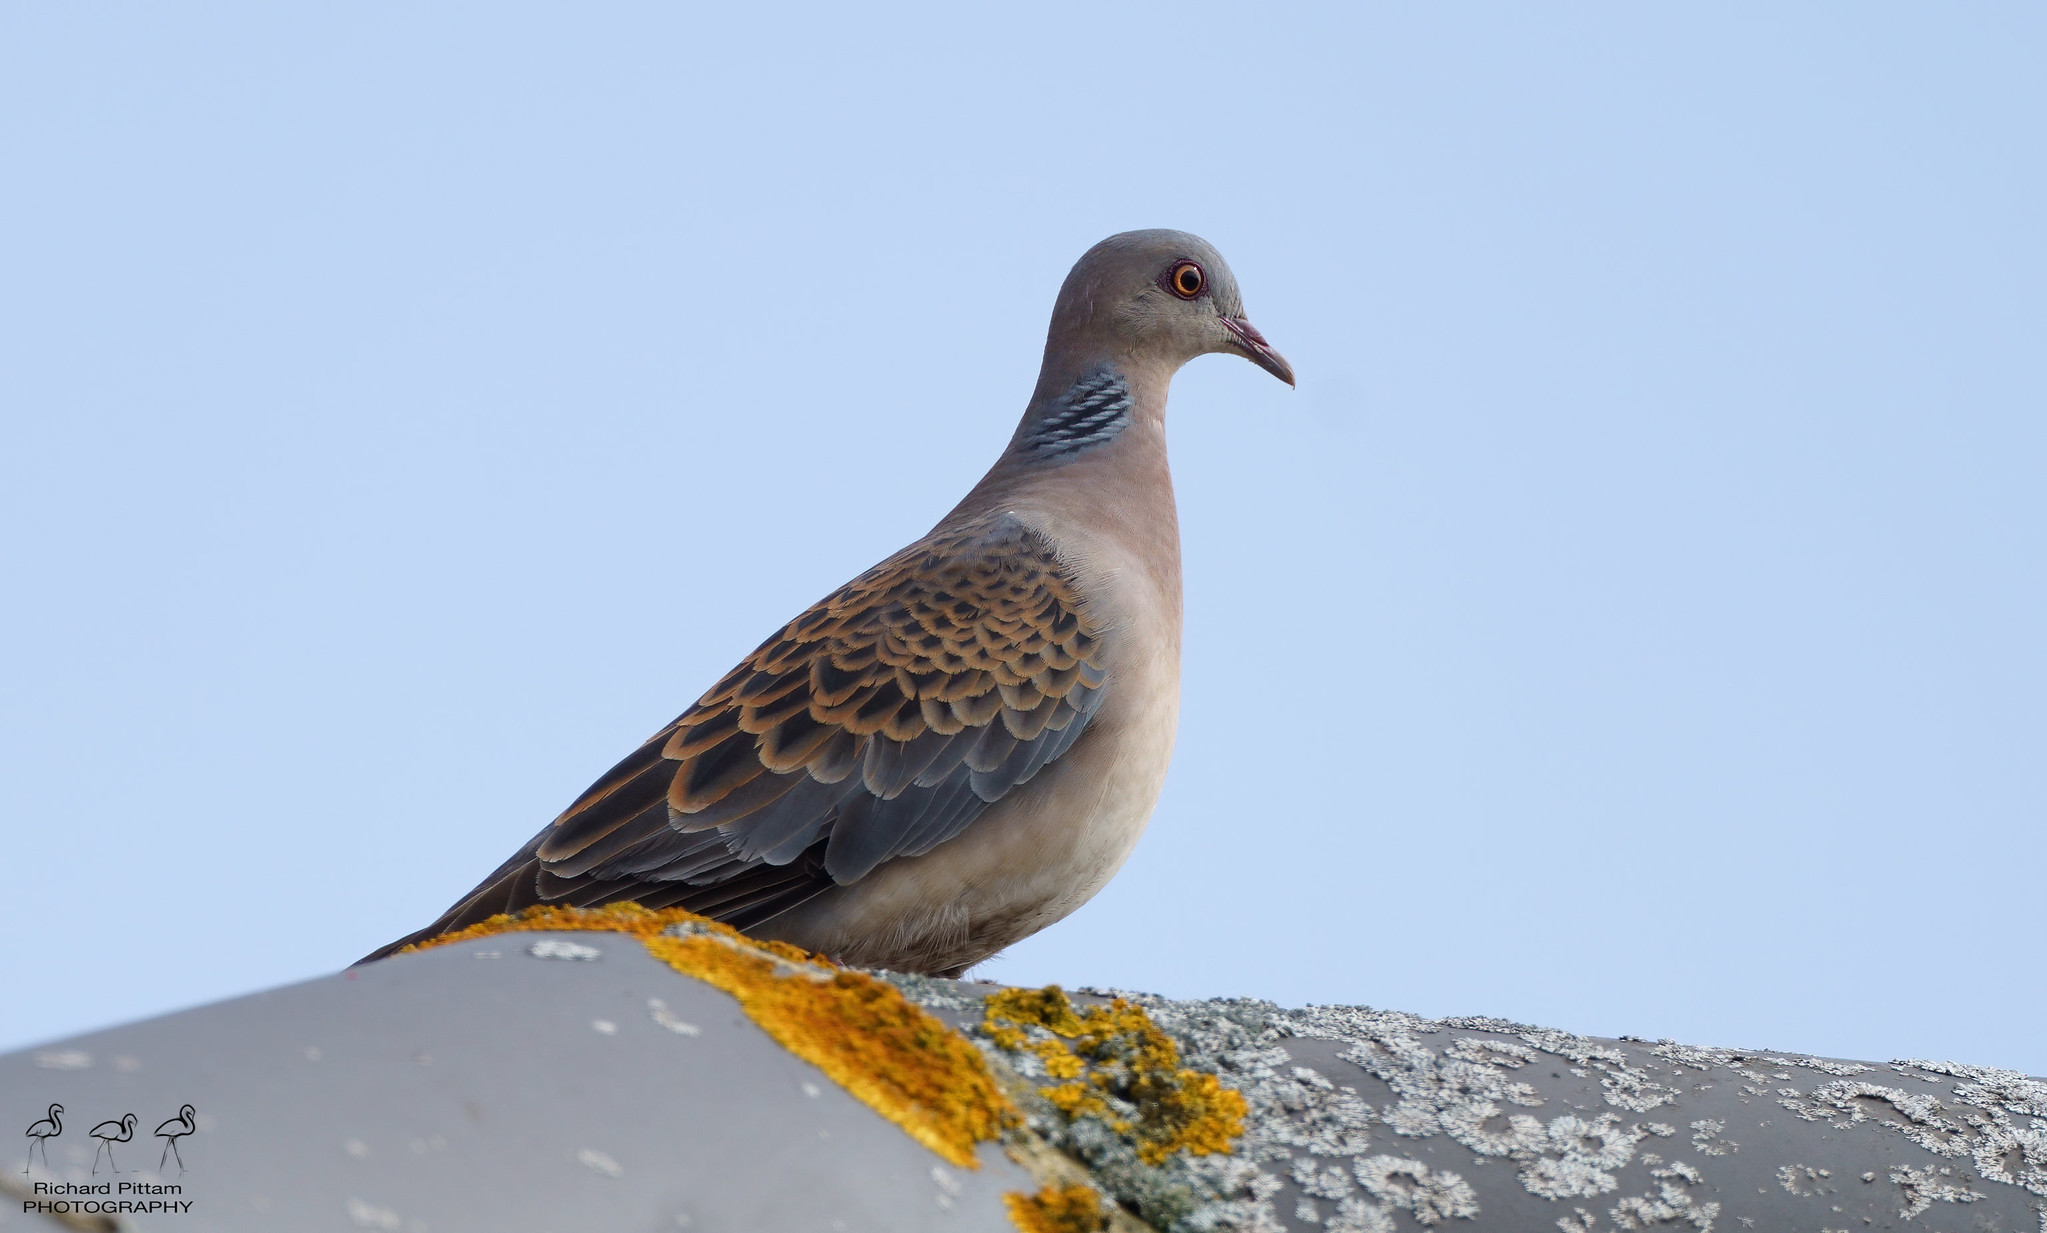 Oriental (Rufous) Turtle Dove ssp. meena - must admit I'm still not sure of differences -vs- Eurasian turtle Dove tbh.